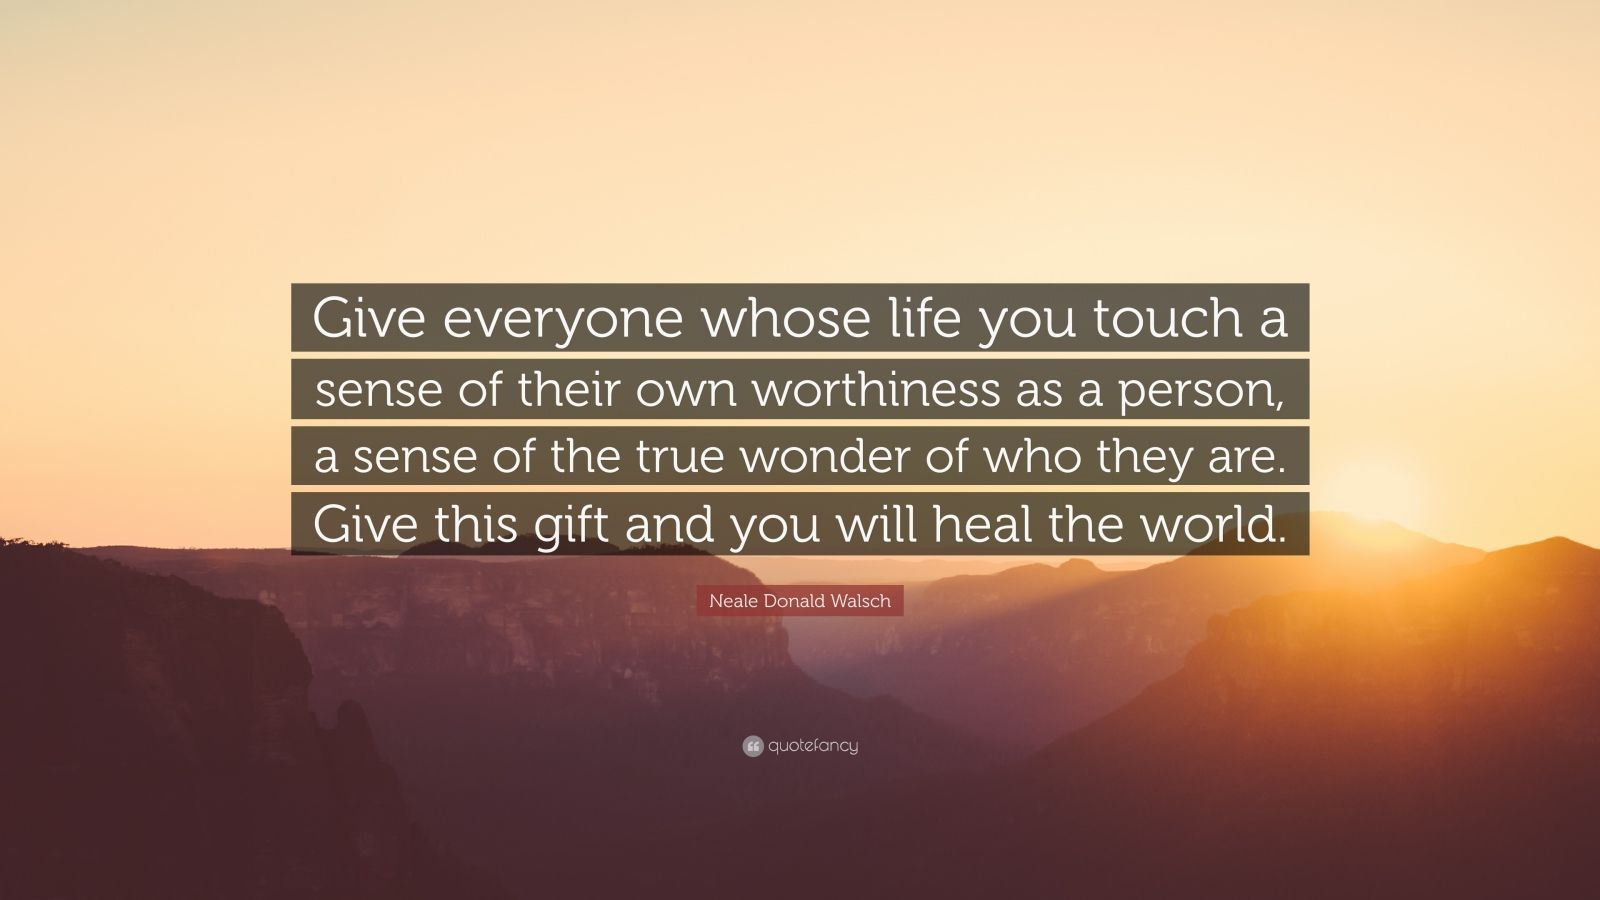 "Neale Donald Walsch Quote: ""Give everyone whose life you touch a sense of their own worthiness as a person, a sense of the true wonder of who they are. Give this gift and you will heal the world."""